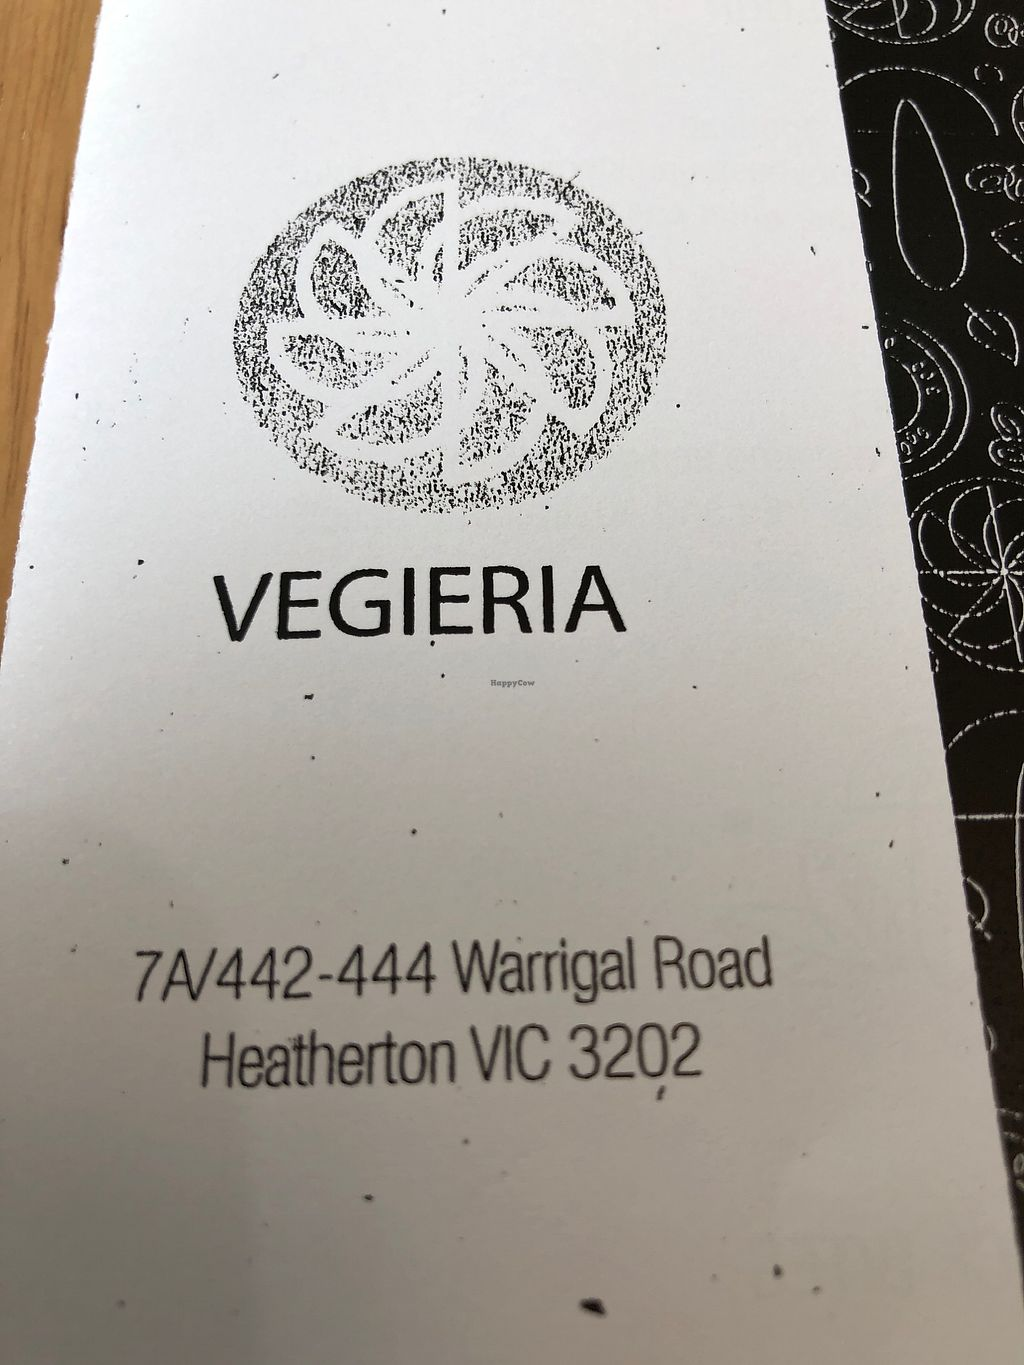 """Photo of Vegieria  by <a href=""""/members/profile/tardis3"""">tardis3</a> <br/>Name & address  <br/> November 25, 2017  - <a href='/contact/abuse/image/103413/328868'>Report</a>"""